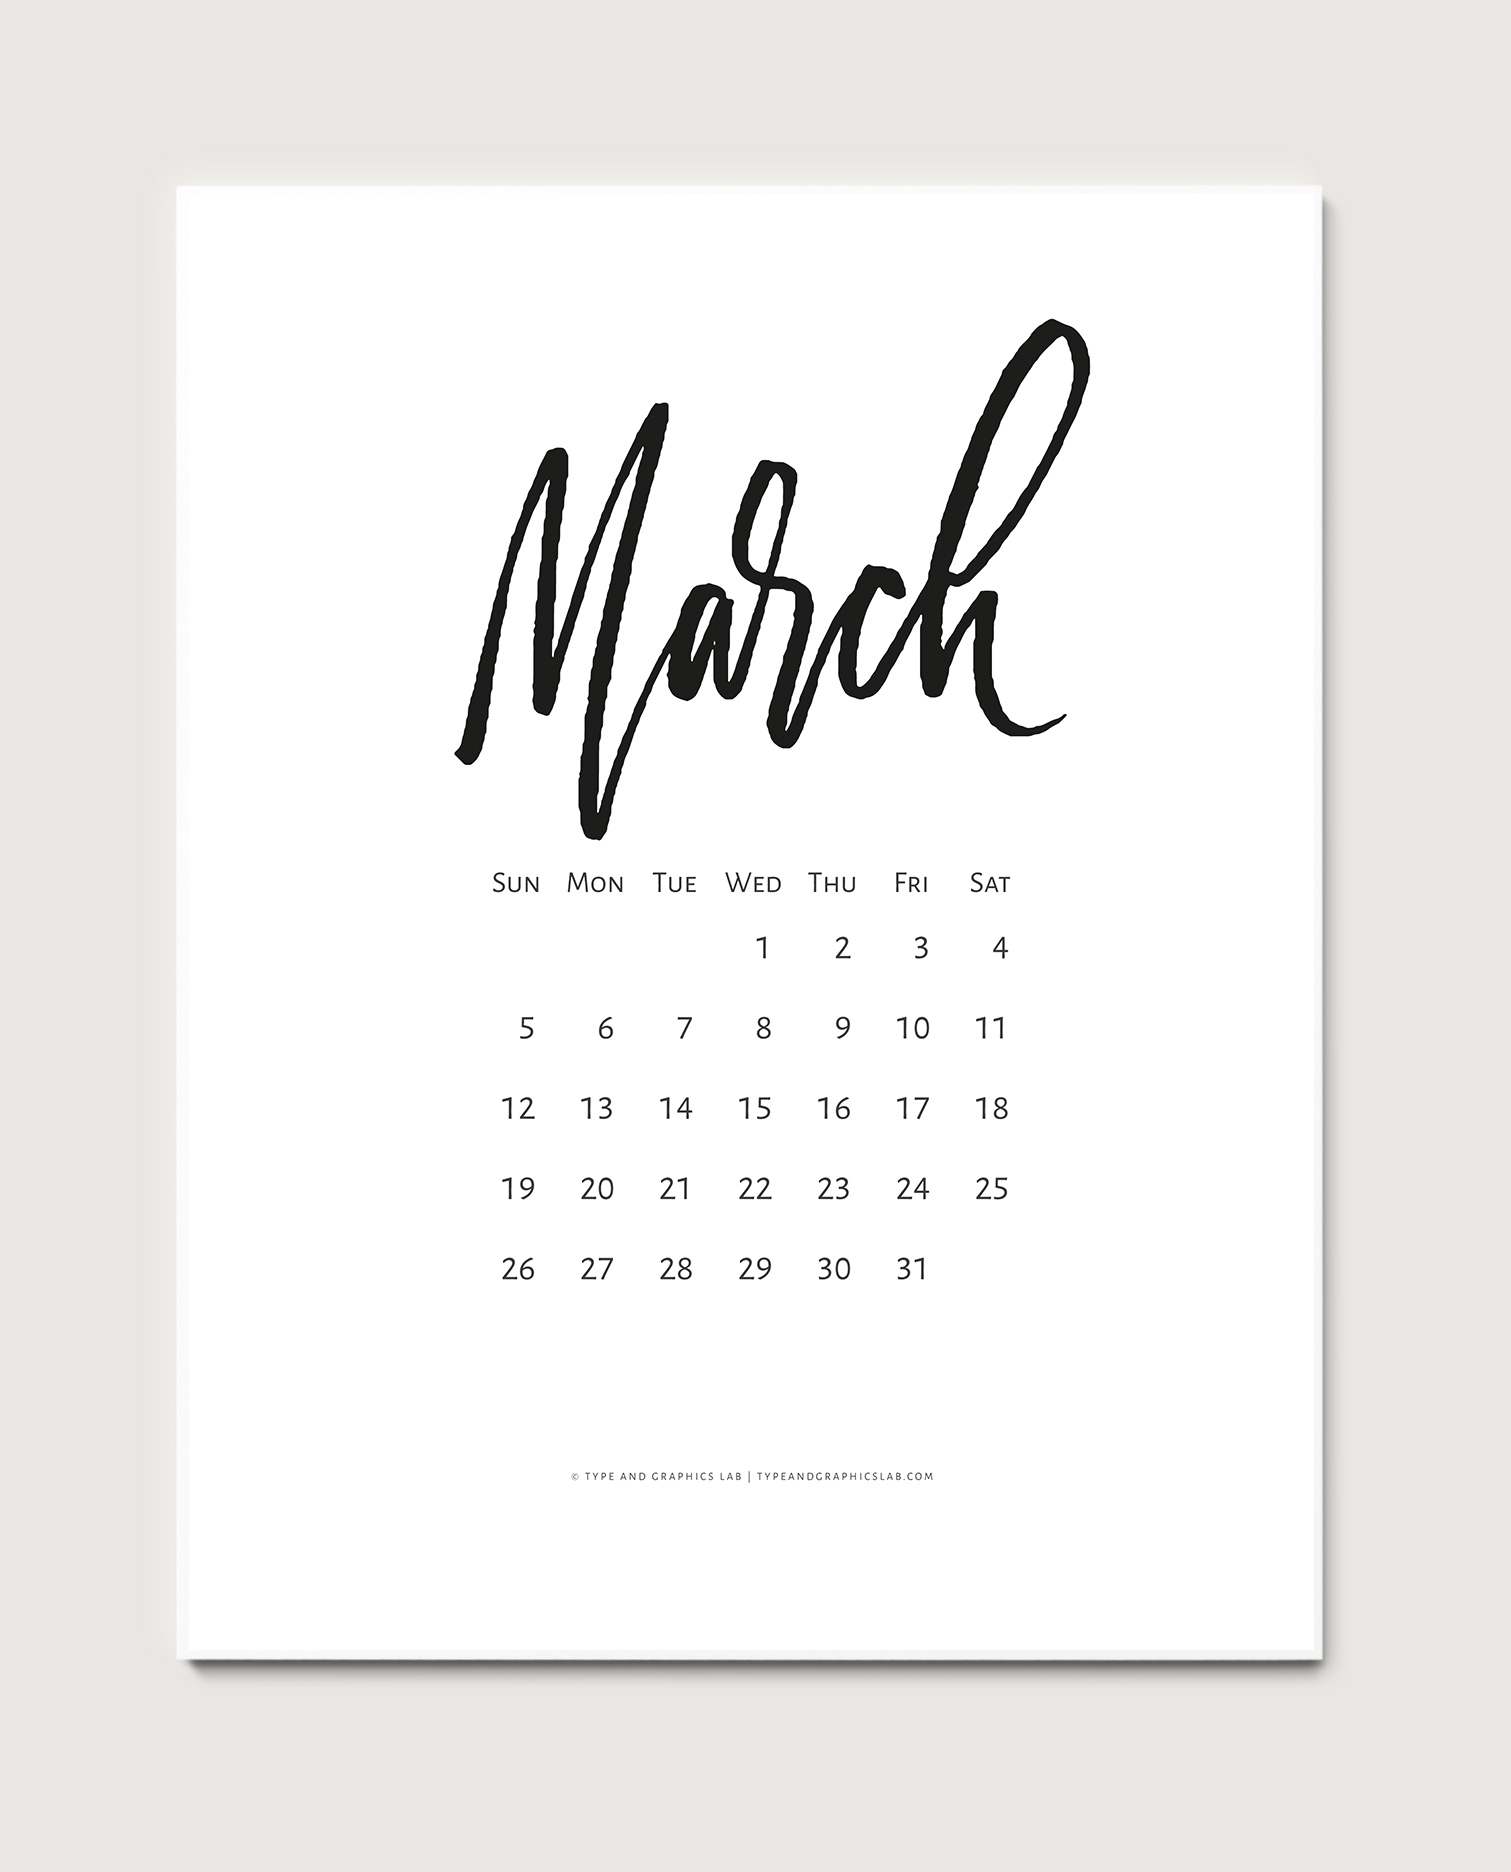 Download a free printable calendar for March 2017 |©typeandgraphicslab.com | For personal use only